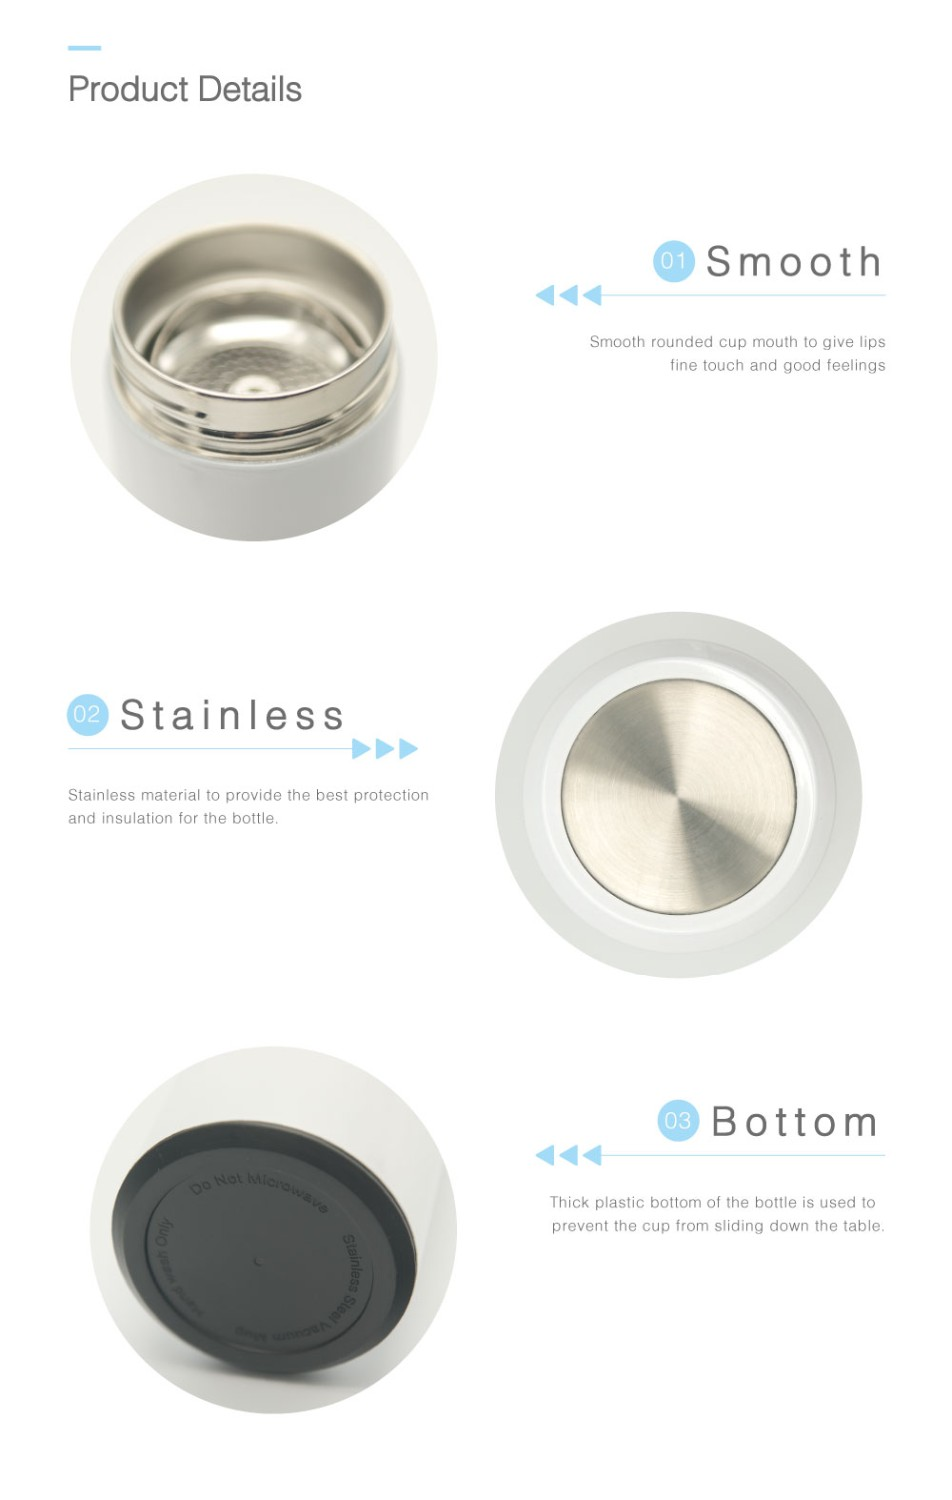 stainless-steel-thermal-vacuum-cup-bottle-introduction-product-details-en